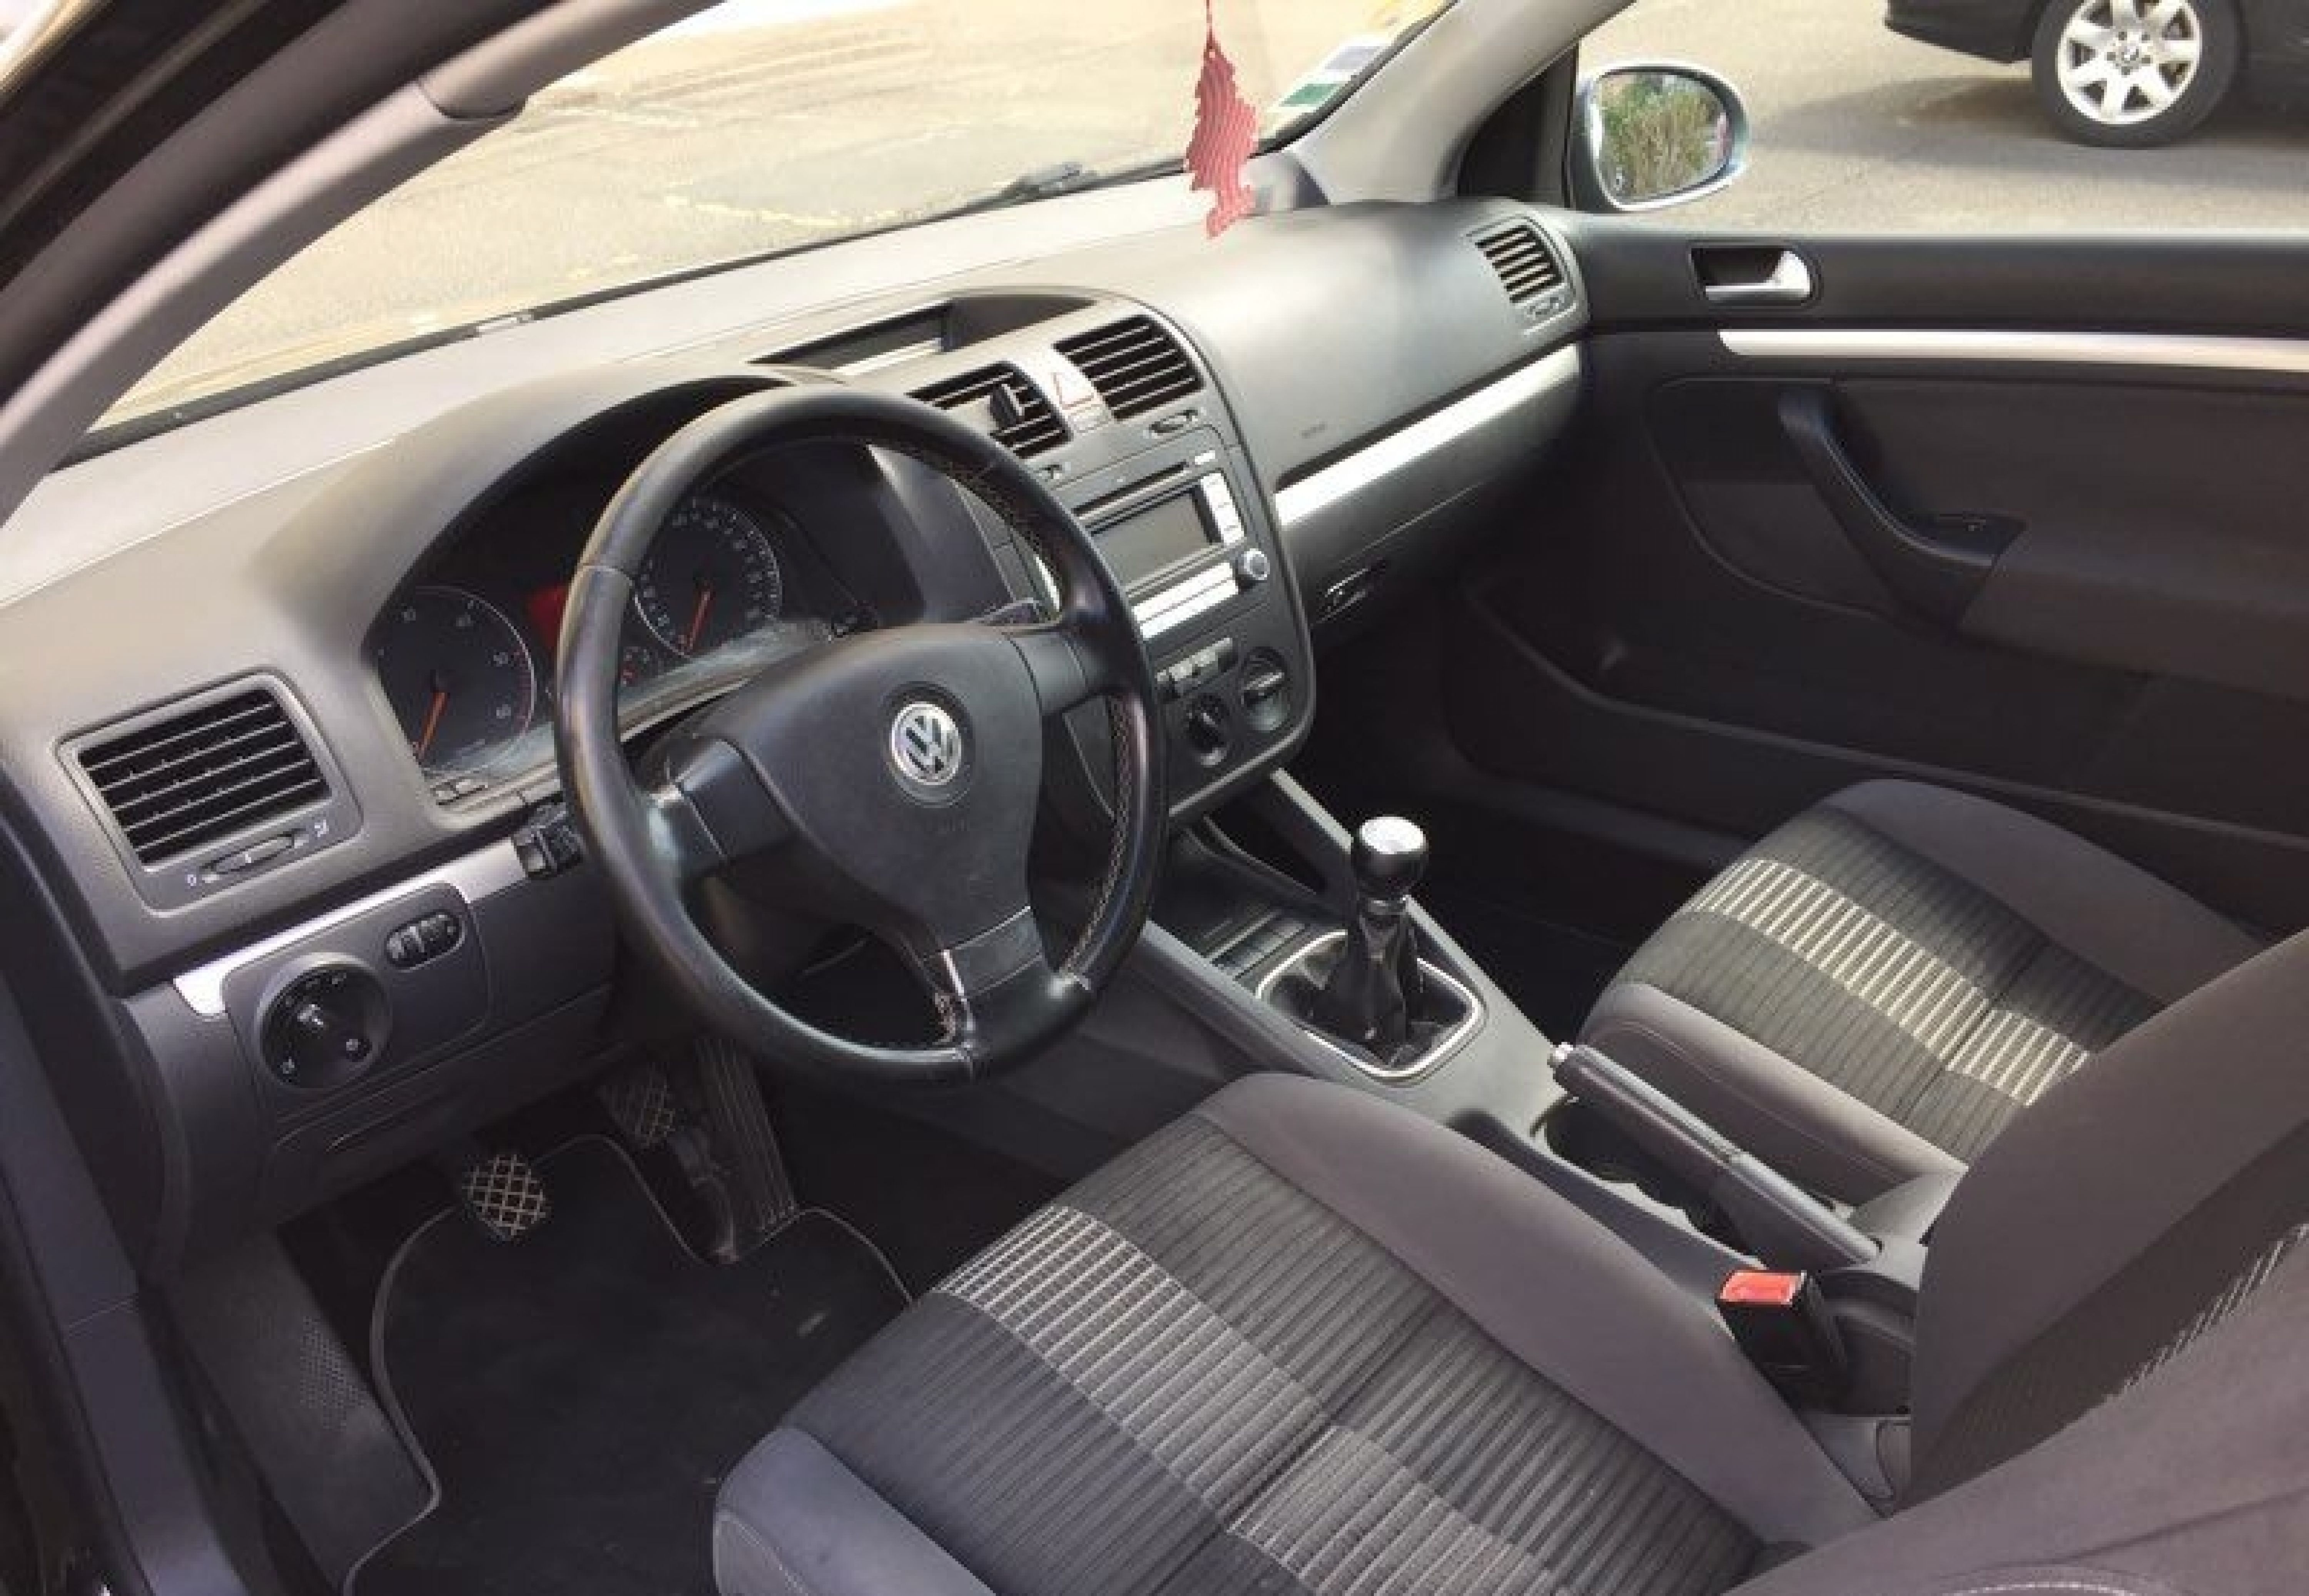 Golf v 1.9 tdi  - Photo 3